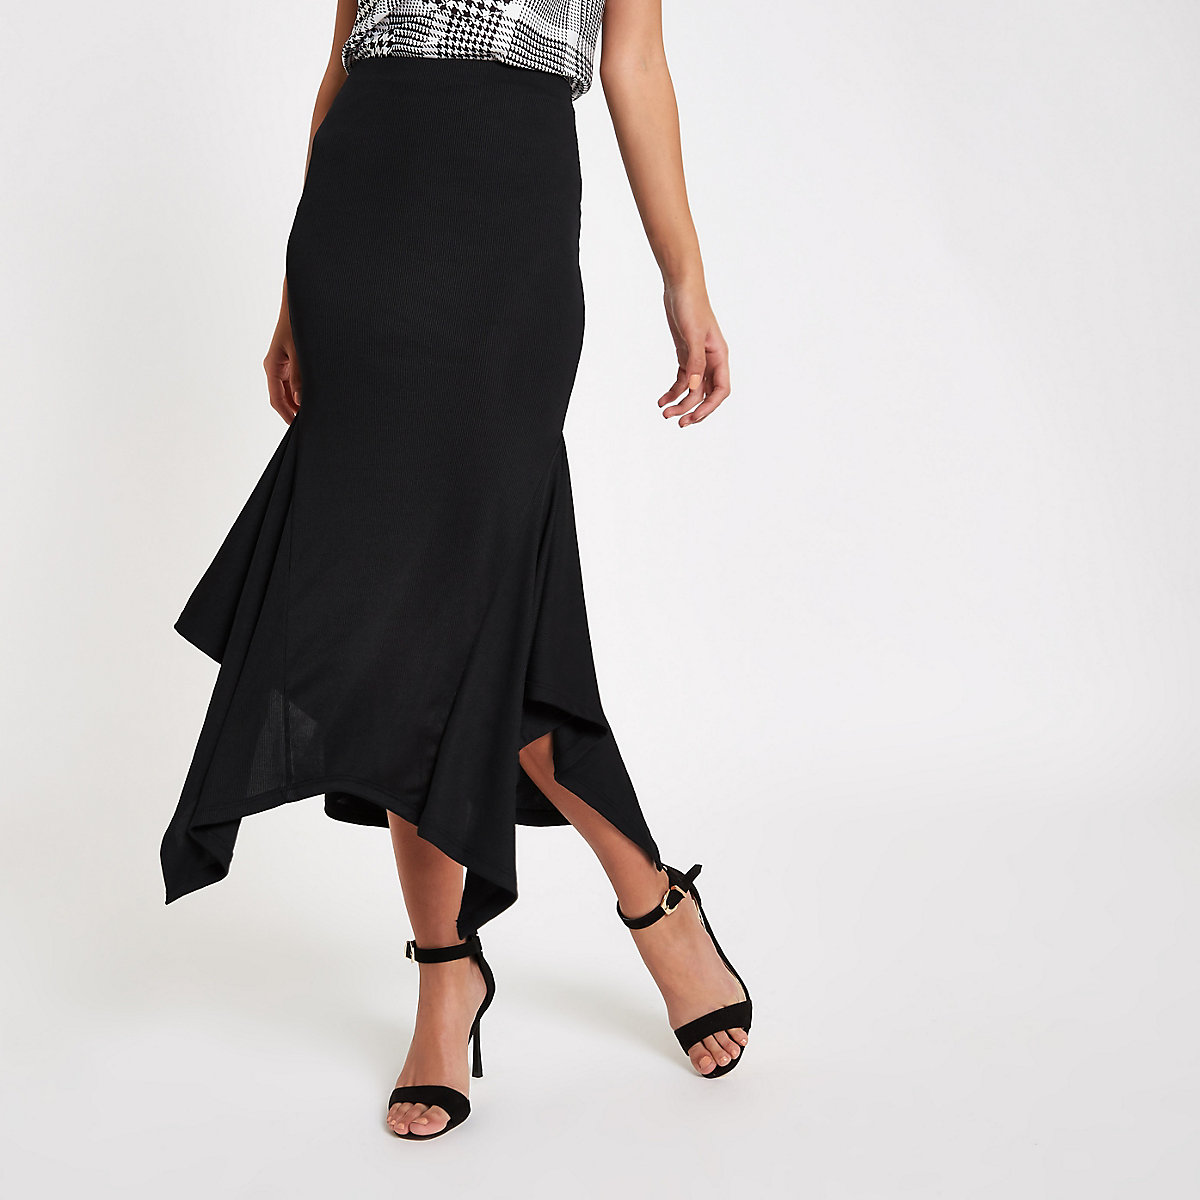 Black ribbed slinky side flare midi skirt